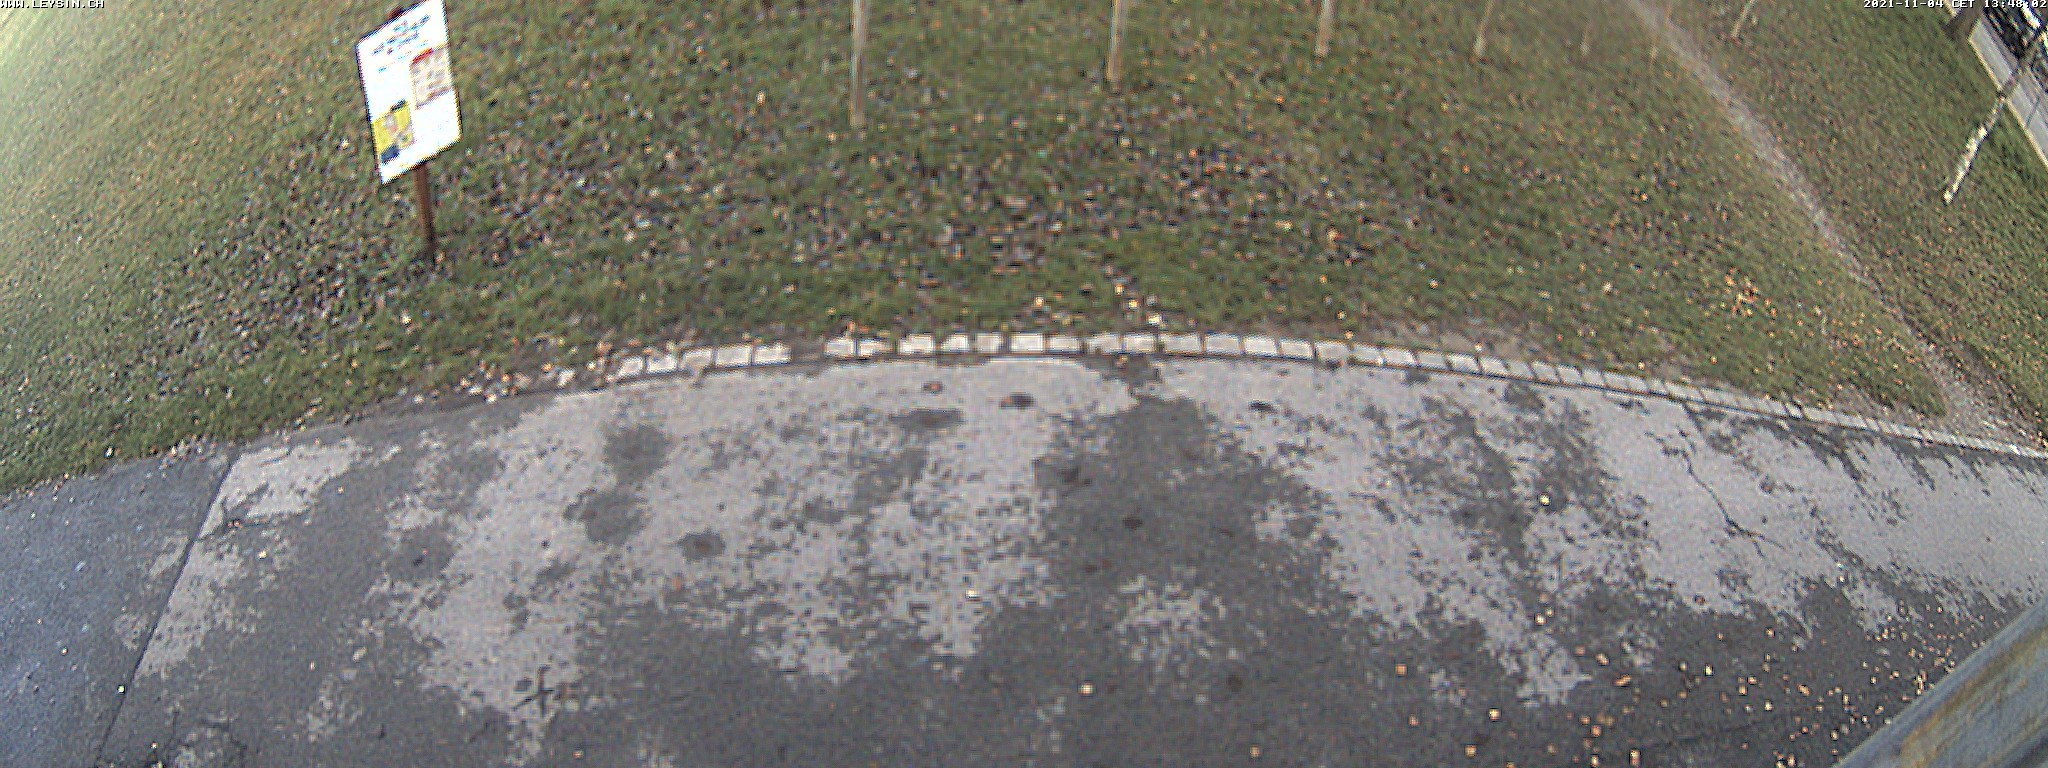 Chalet-à-Gobet webcam